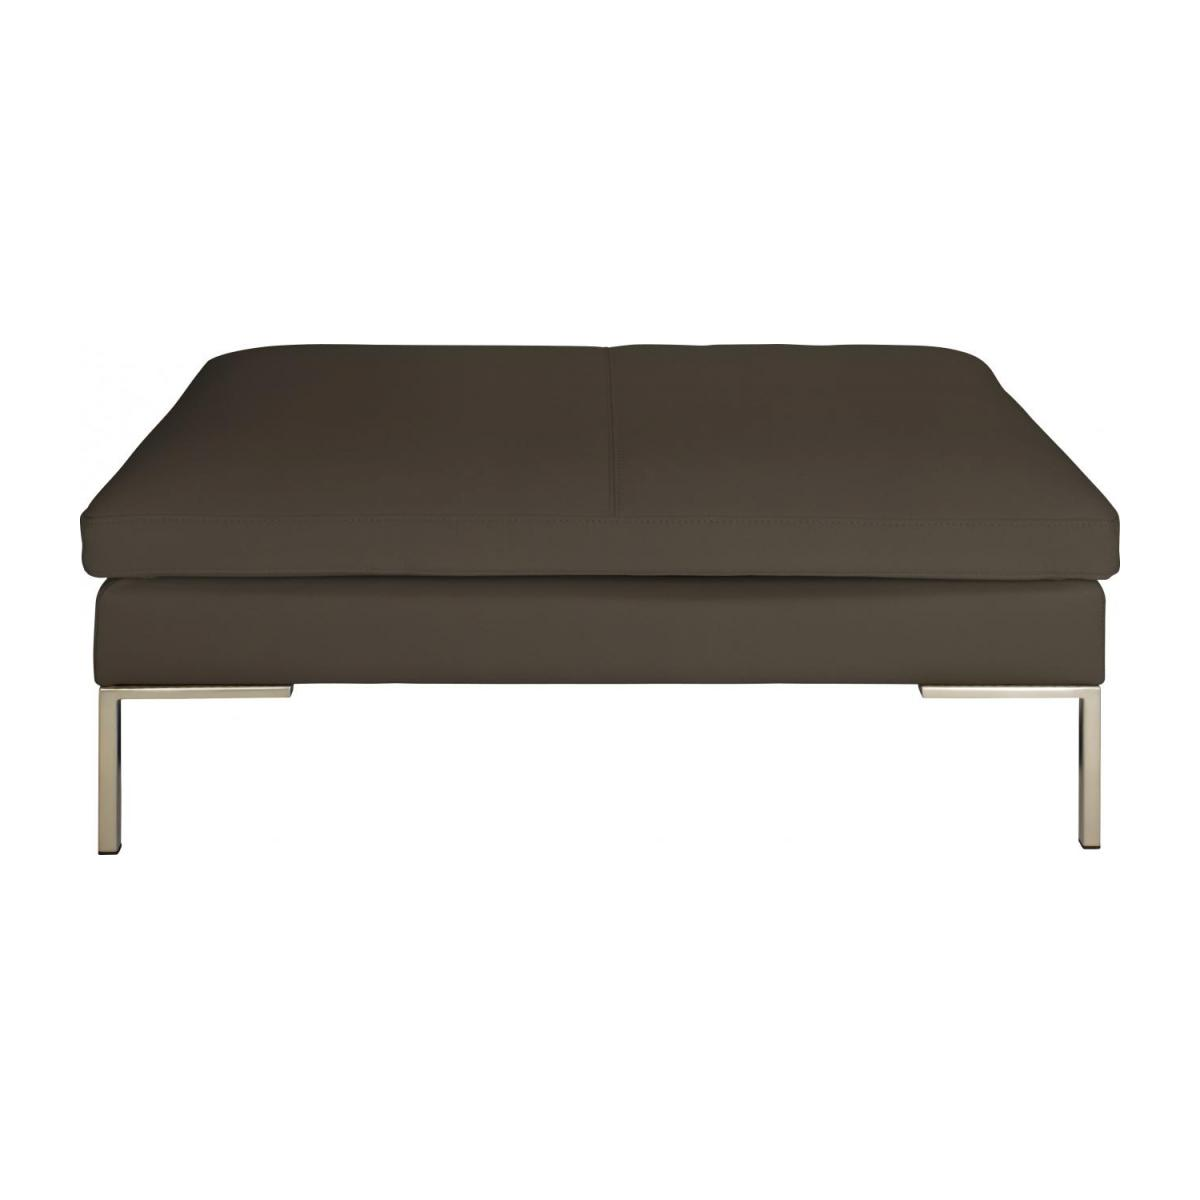 Footstool in Eton veined leather, stone n°2